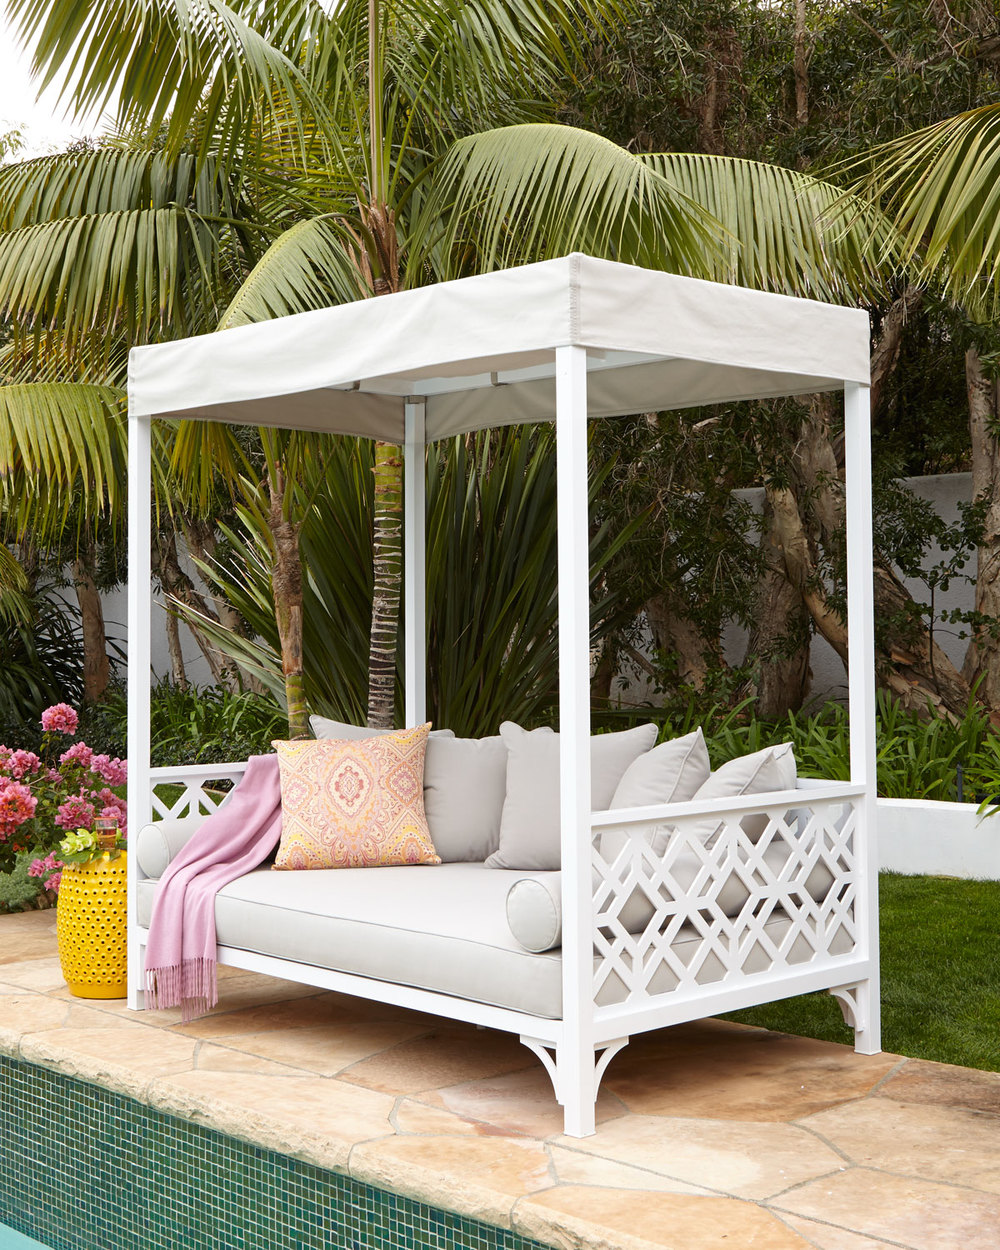 MADE IN THE SHADE A CANOPY-COVERED OUTDOOR DAYBED MADE FOR LOUNGING u2014 .stylebeatblog.com & MADE IN THE SHADE: A CANOPY-COVERED OUTDOOR DAYBED MADE FOR ...